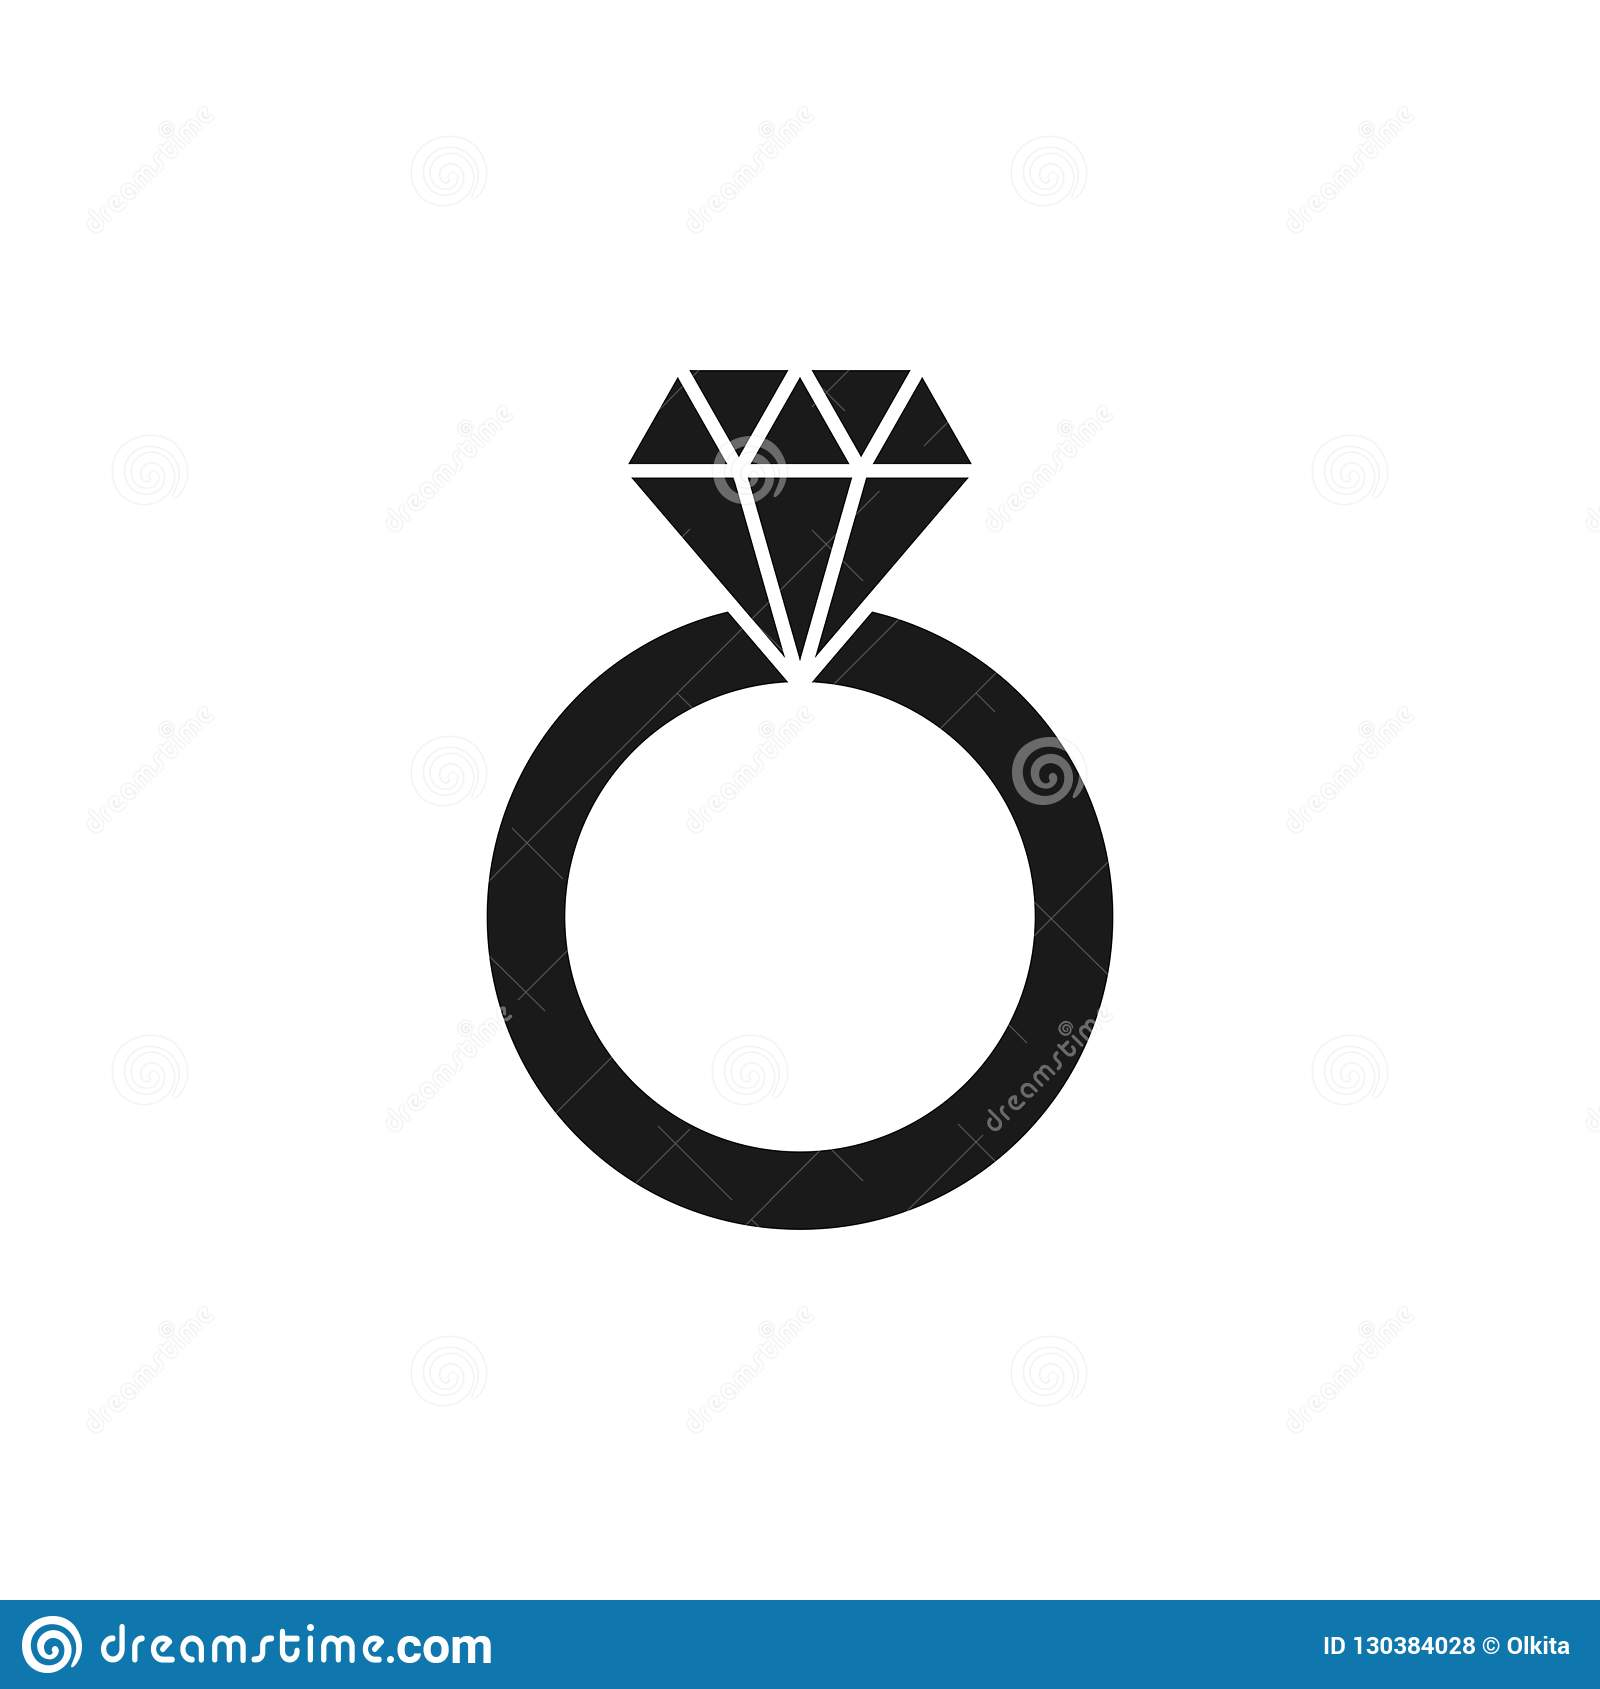 Wedding Ring Silhouette Stock Illustrations 3 774 Wedding Ring Silhouette Stock Illustrations Vectors Clipart Dreamstime